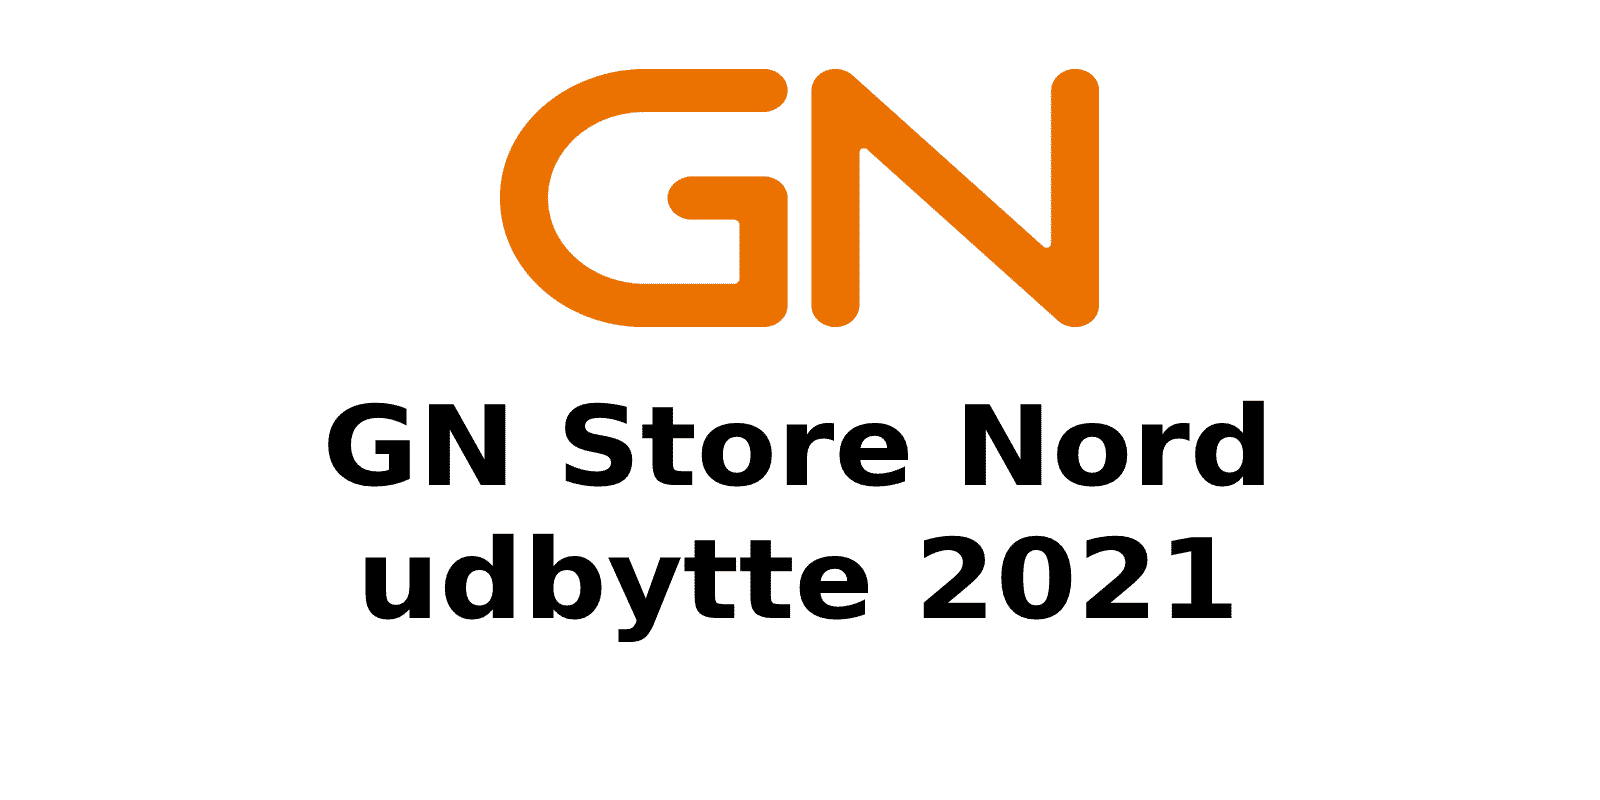 GN Store Nord udbytte 2021